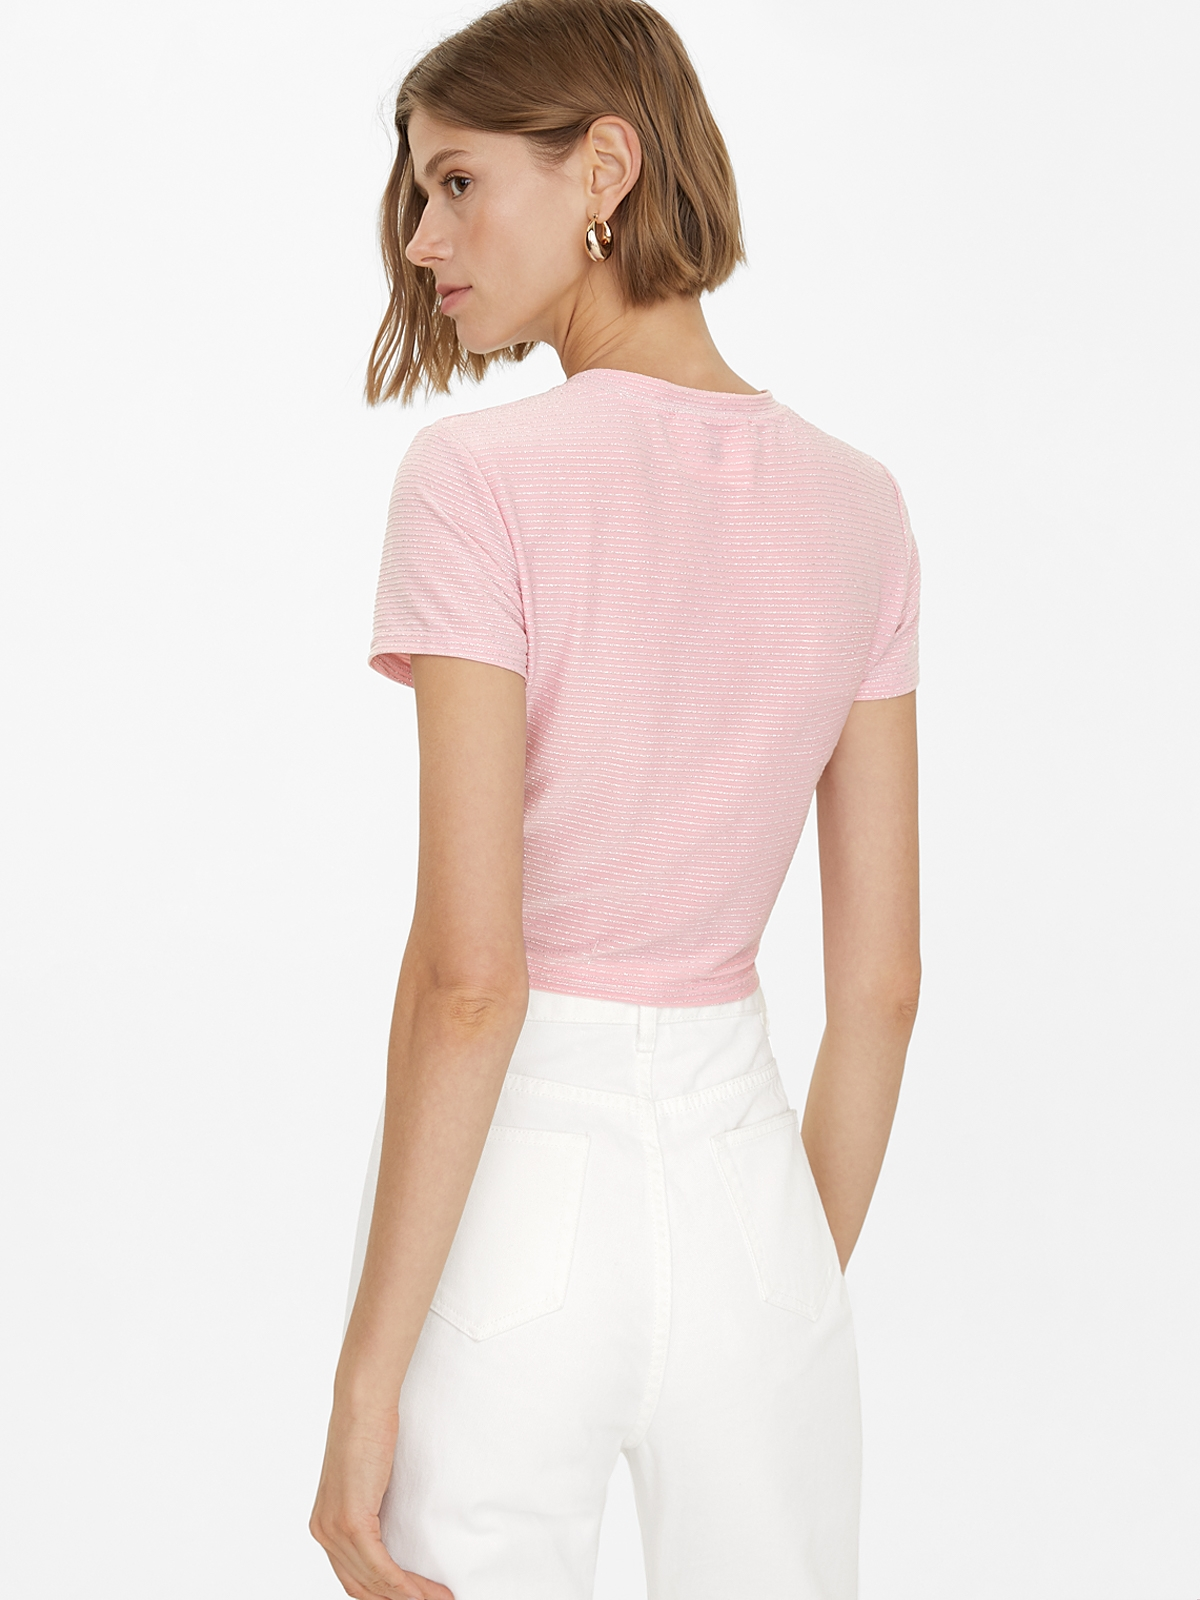 Glitter Pinstripes Knotted Top Pink